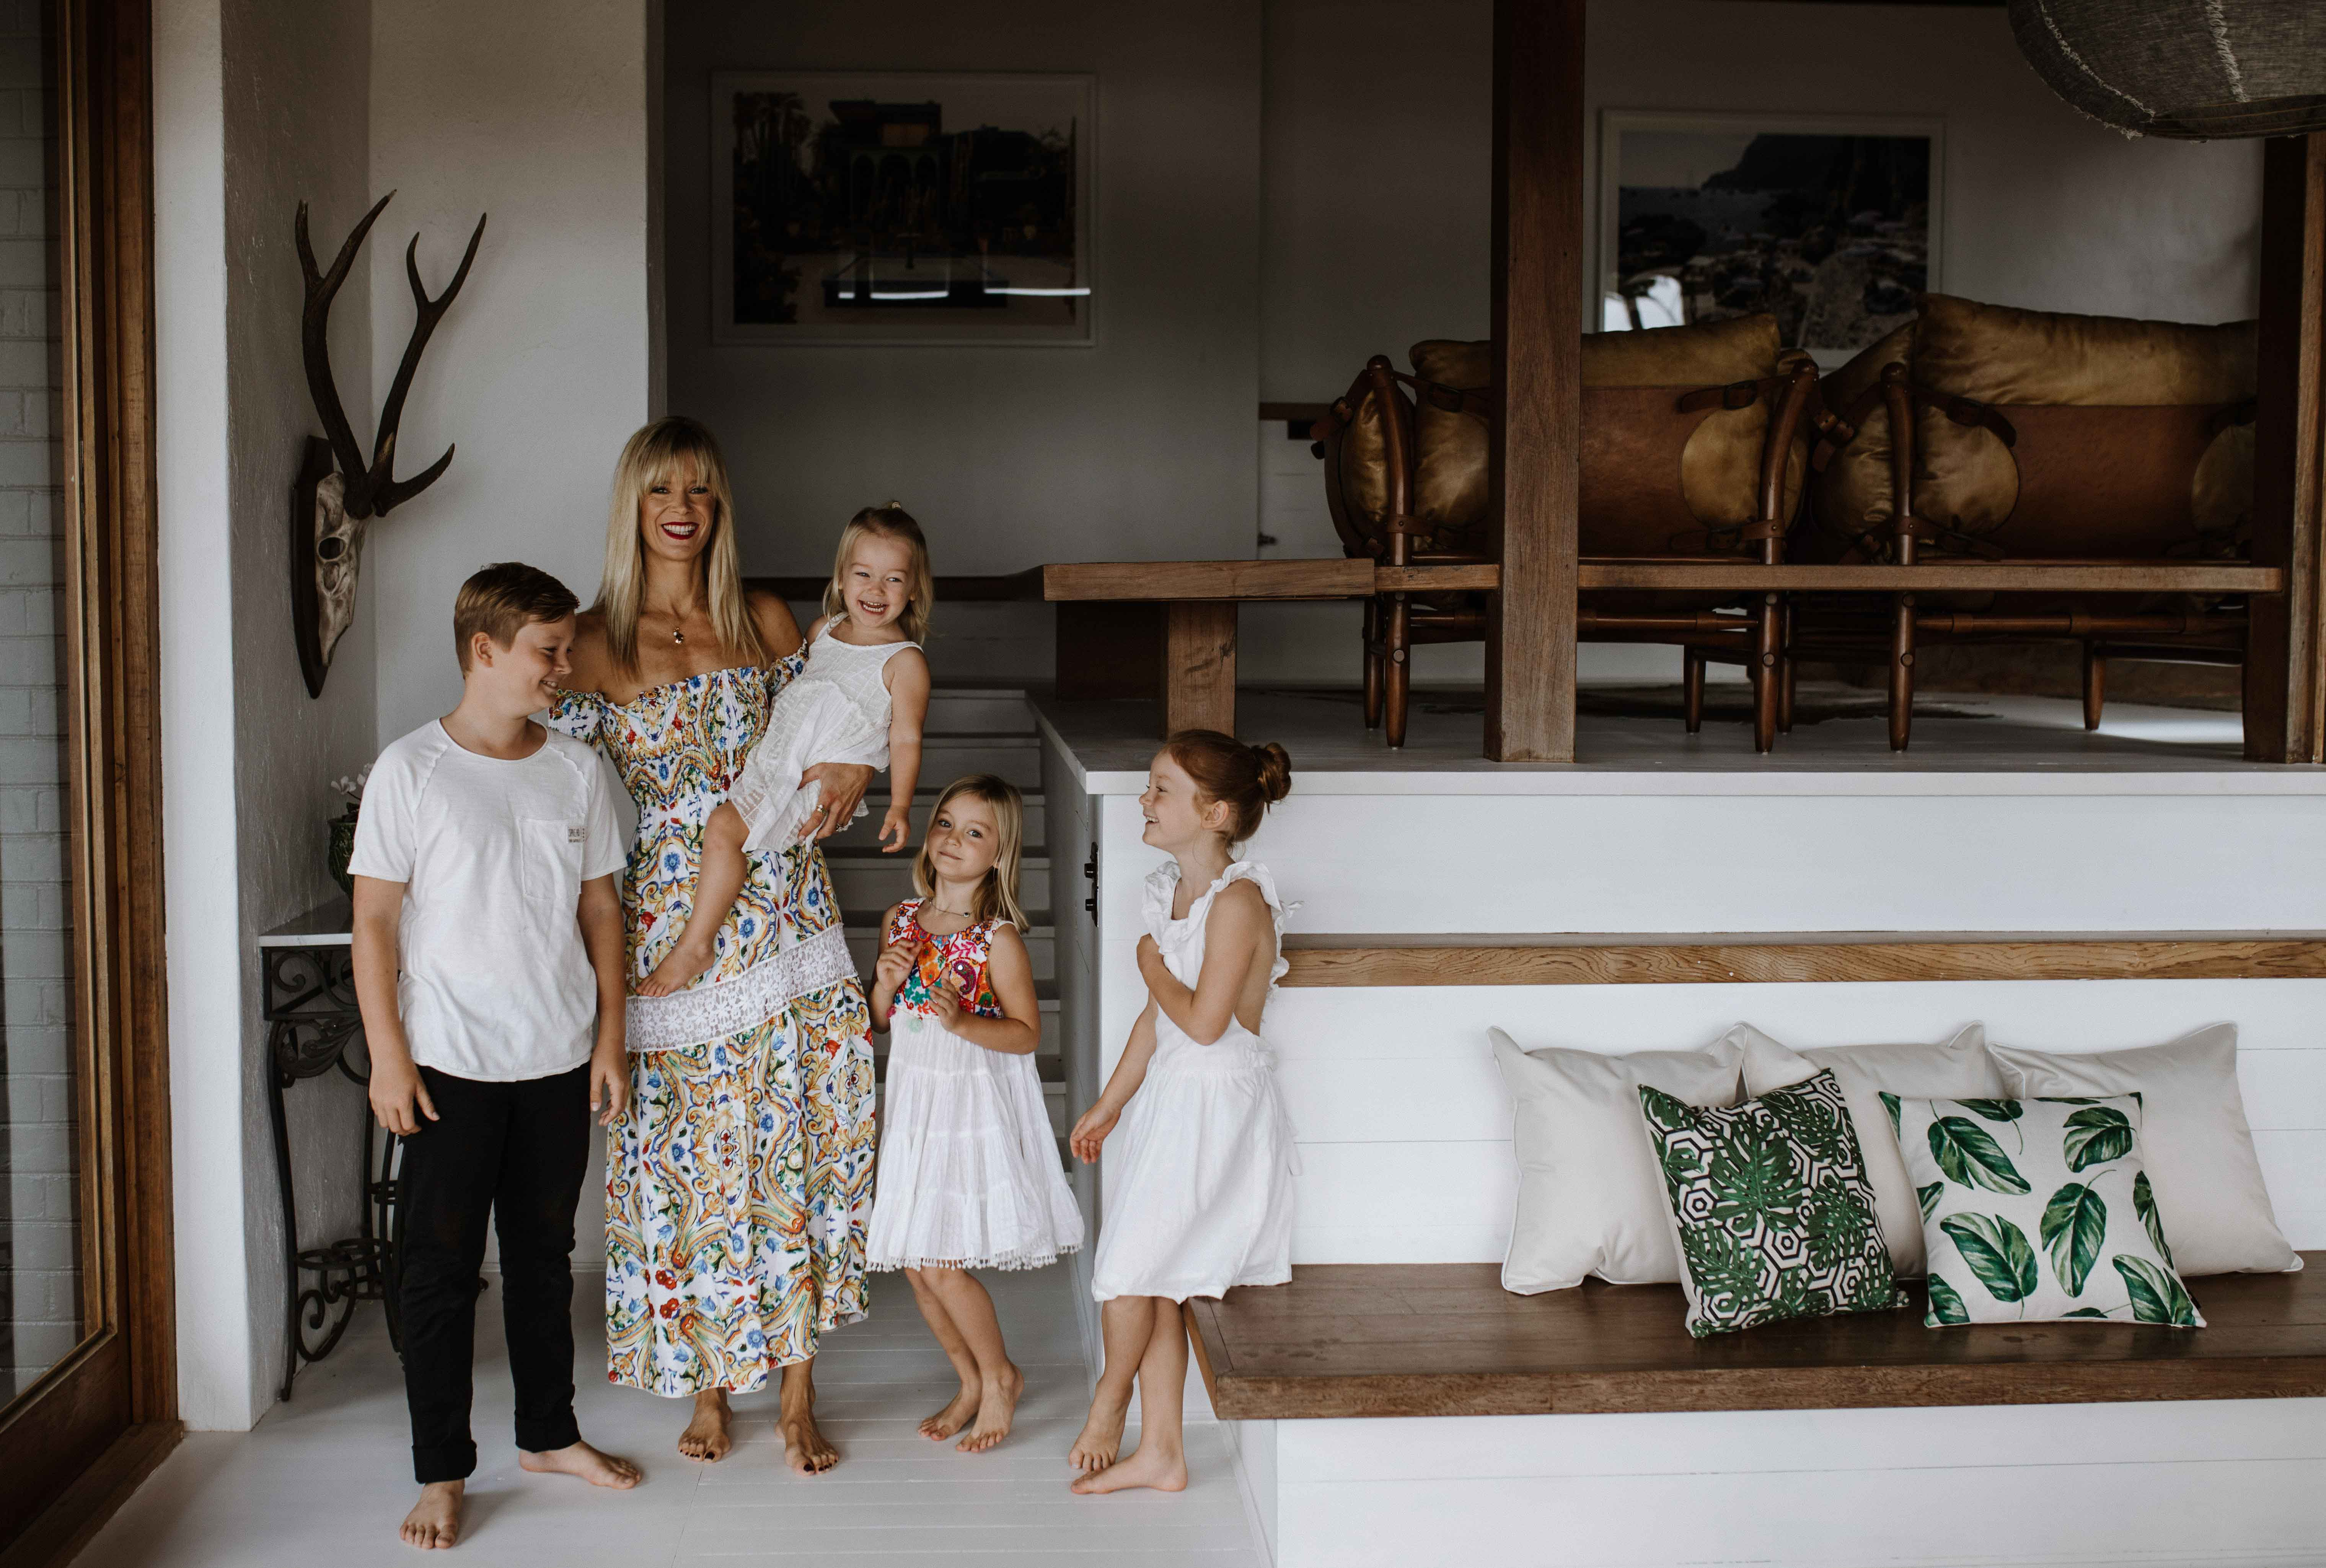 Olivia Babarczy On Family, Fashion & Interiors (And A Peek Inside Her New Beachside Abode)